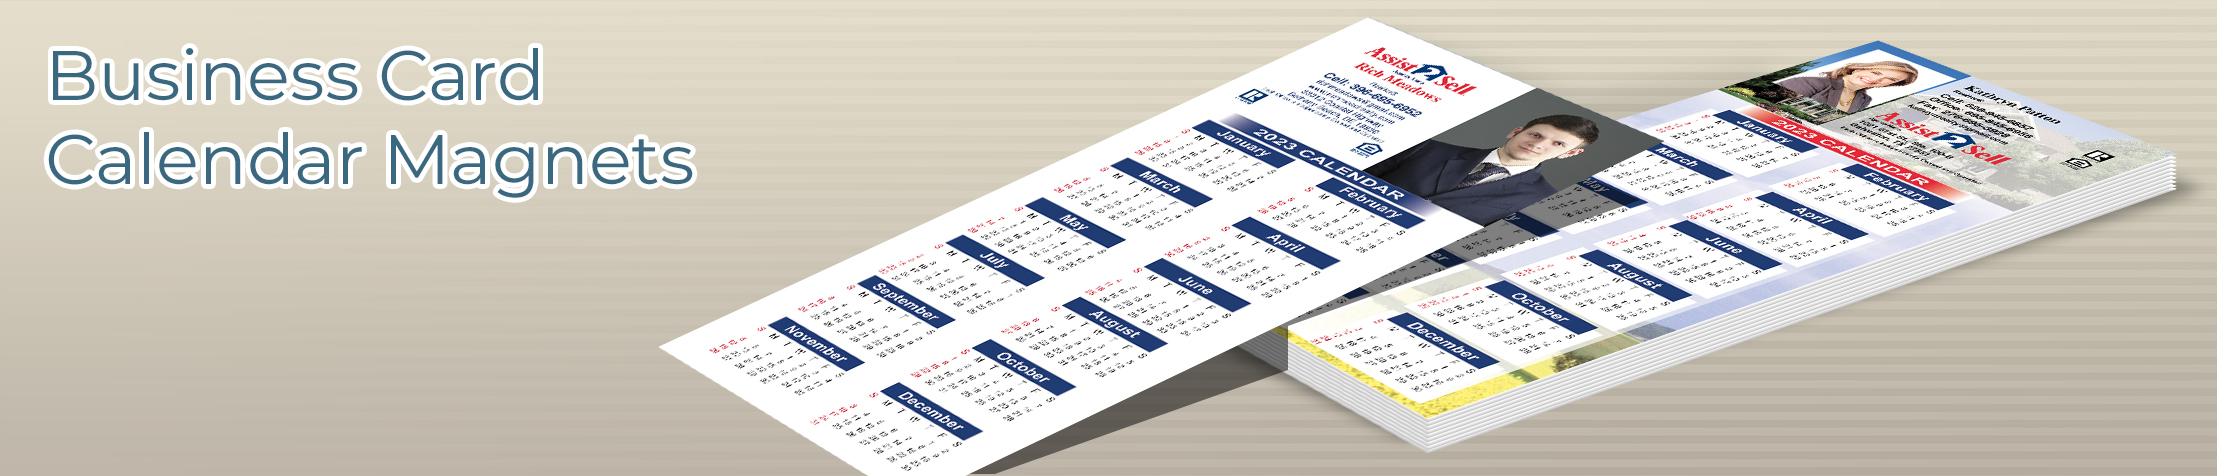 Assist2Sell Real Estate Business Card Calendar Magnets - Assist2Sell Real Estate  2019 calendars with photo and contact info | BestPrintBuy.com